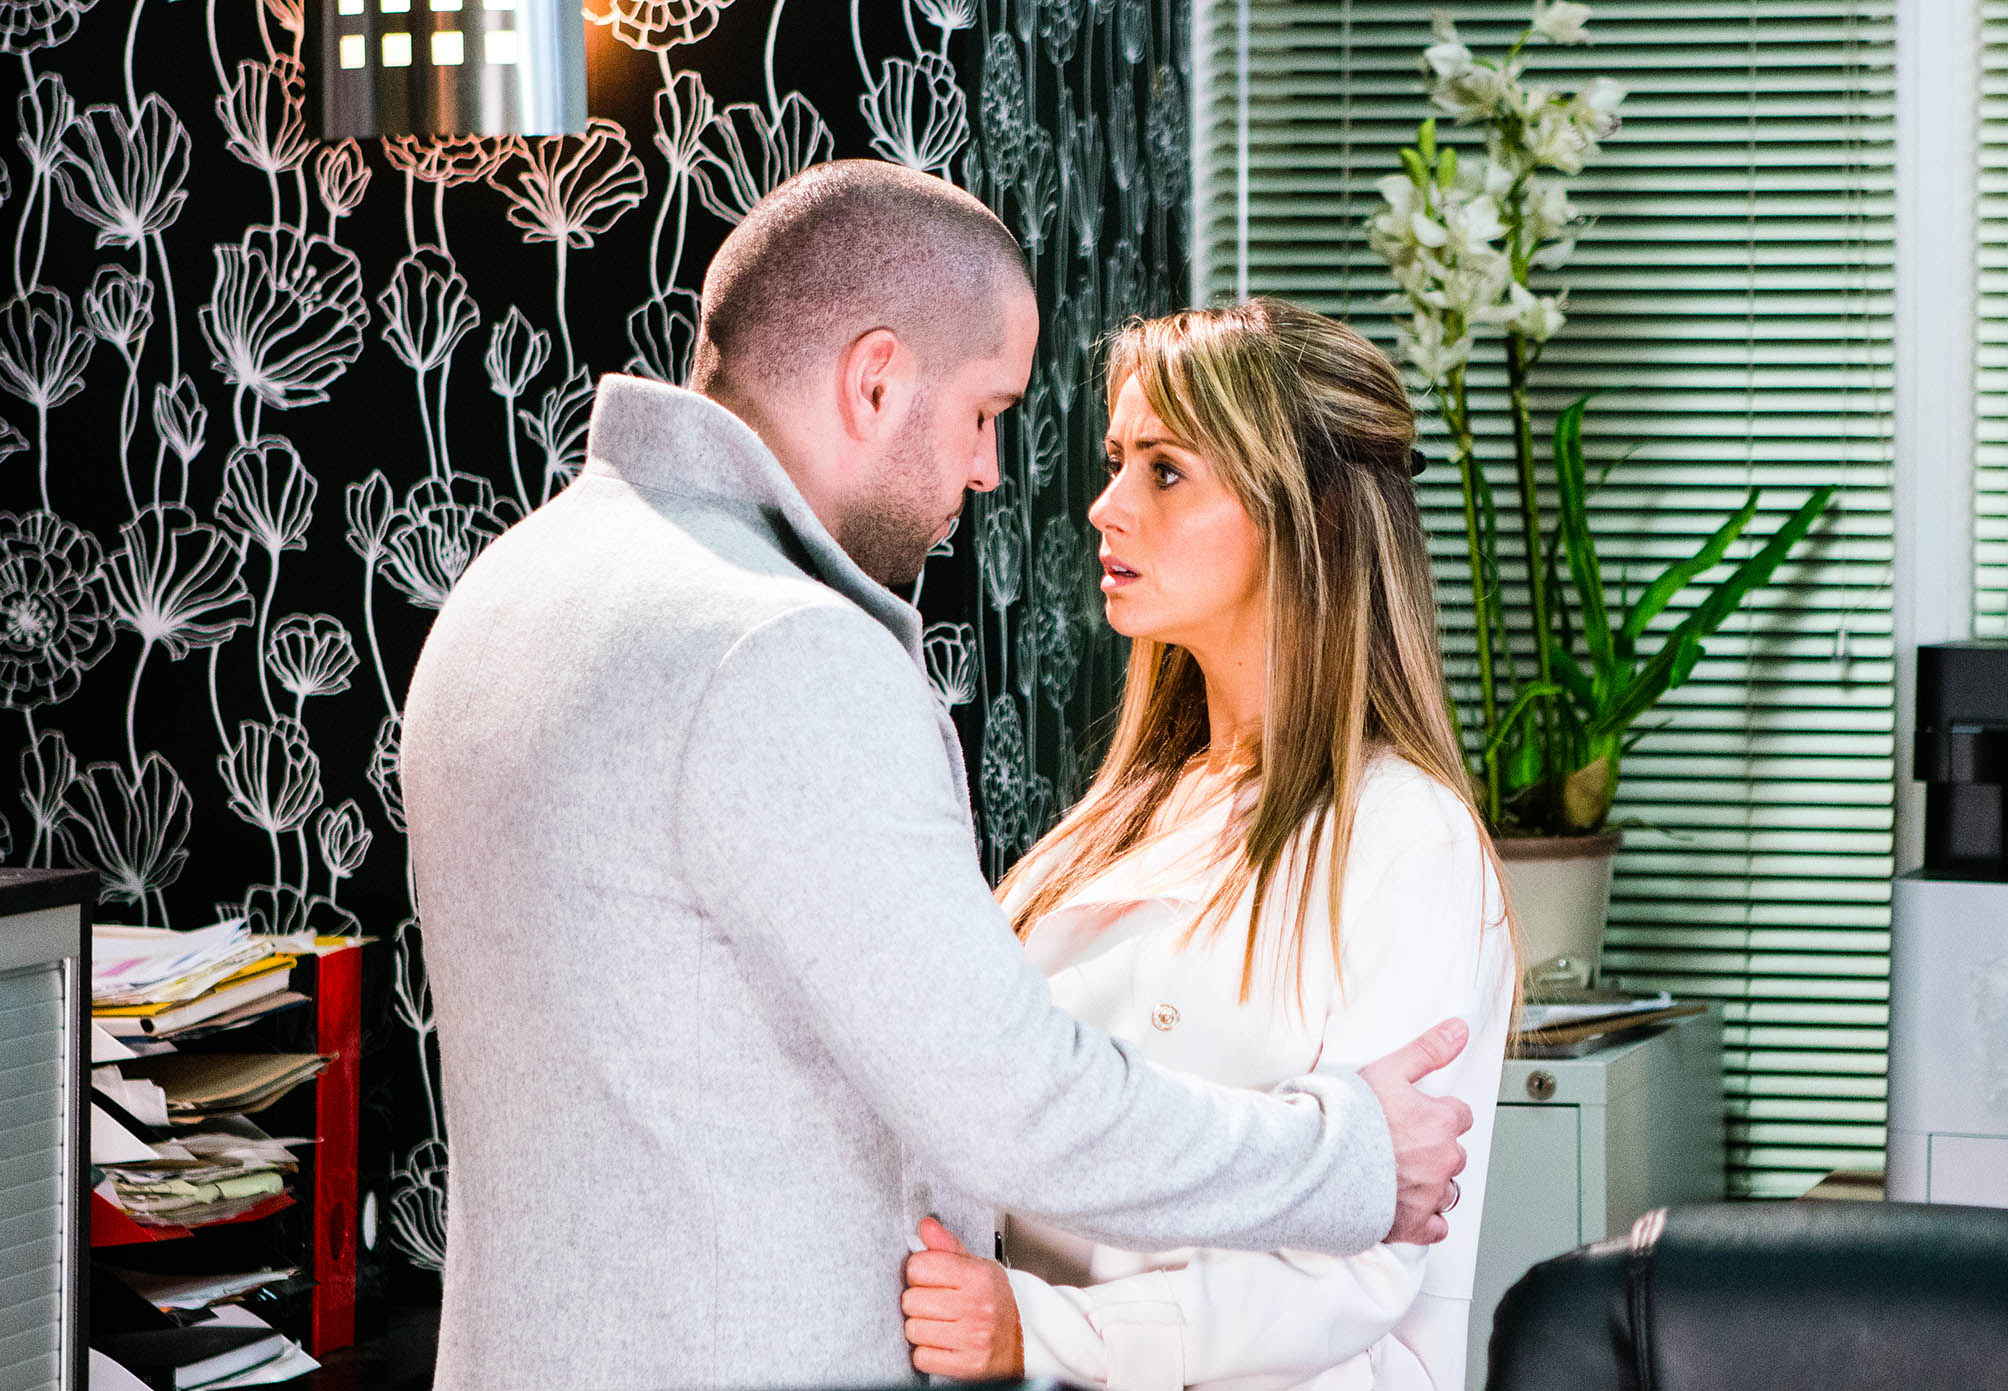 FROM ITV STRICT EMBARGO - No Use Tuesday 13 December 2016 - Please check for any earlier publications. Coronation Street - Ep 9063 Friday 23 December 2016 - 1st Ep Promising Maria Connor [SAMIA LONGCHAMBON] that he's going to finish with Eva, Aidan Connor [SHAYNE WARD and Maria kiss passionately, unaware of Johnny Connorappearance of the person photographed deemed detrimental or inappropriate by ITV plc Picture Desk. This photograph must not be syndicated to any other company, publication or website, or permanently archived, without the express written permission of ITV Plc Picture Desk. Full Terms and conditions are available on the website www.itvpictures.com